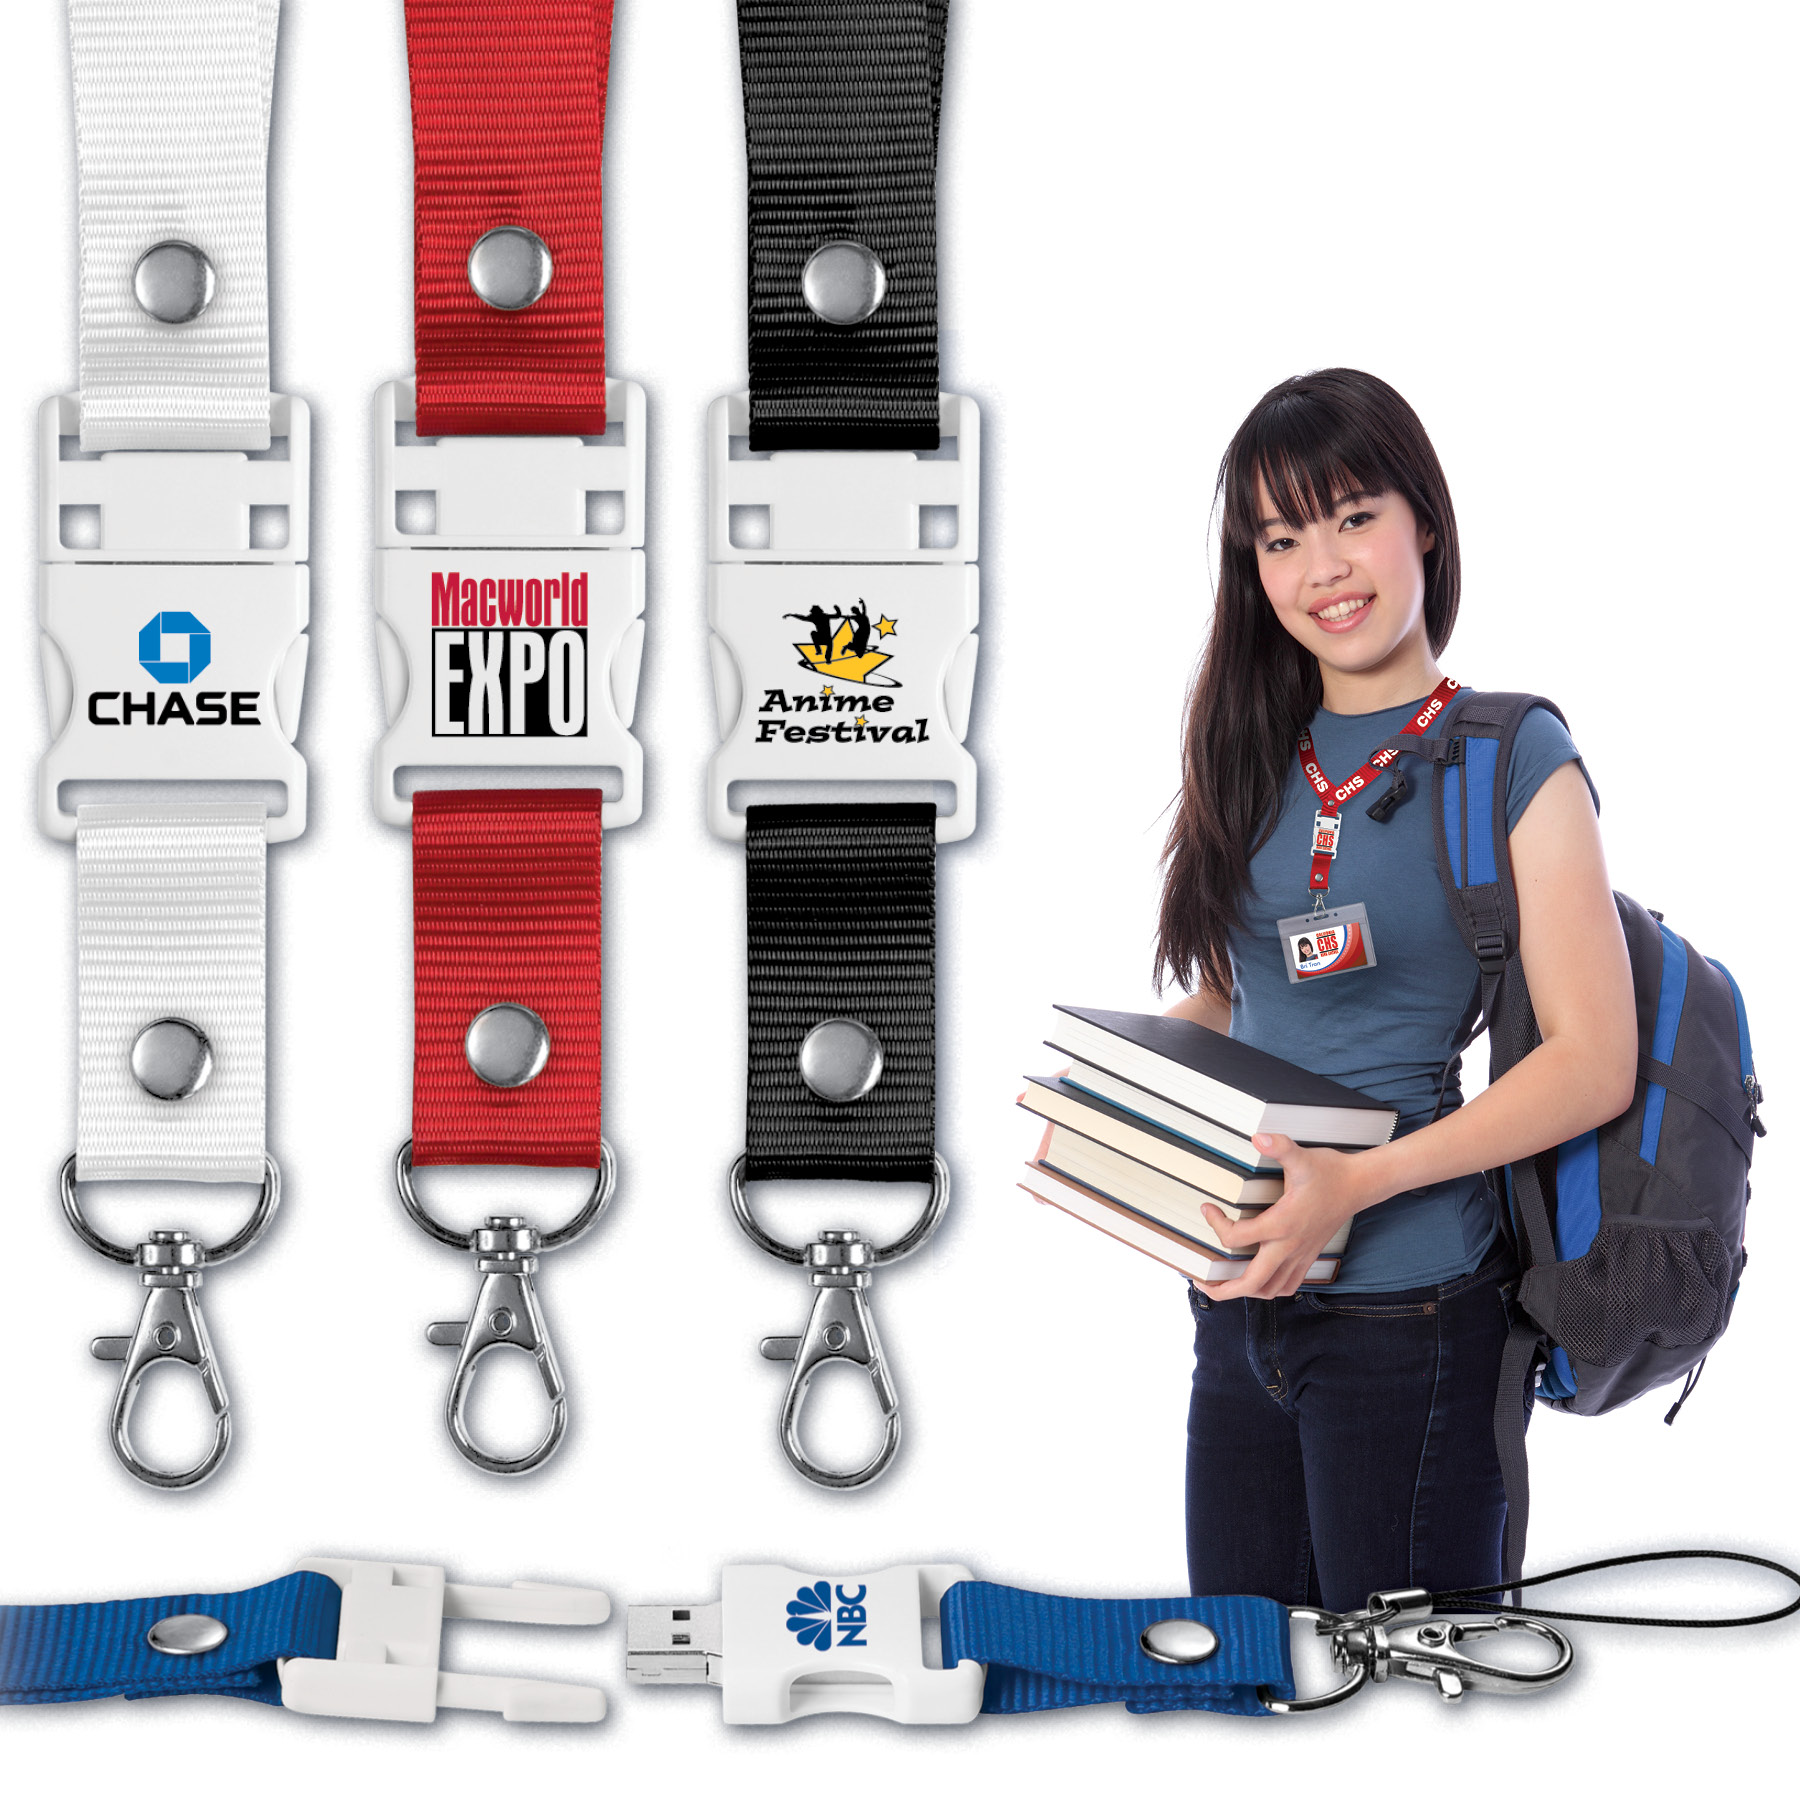 USB 2.0 Lanyard Drive™ LD Flash Drive (2 GB)